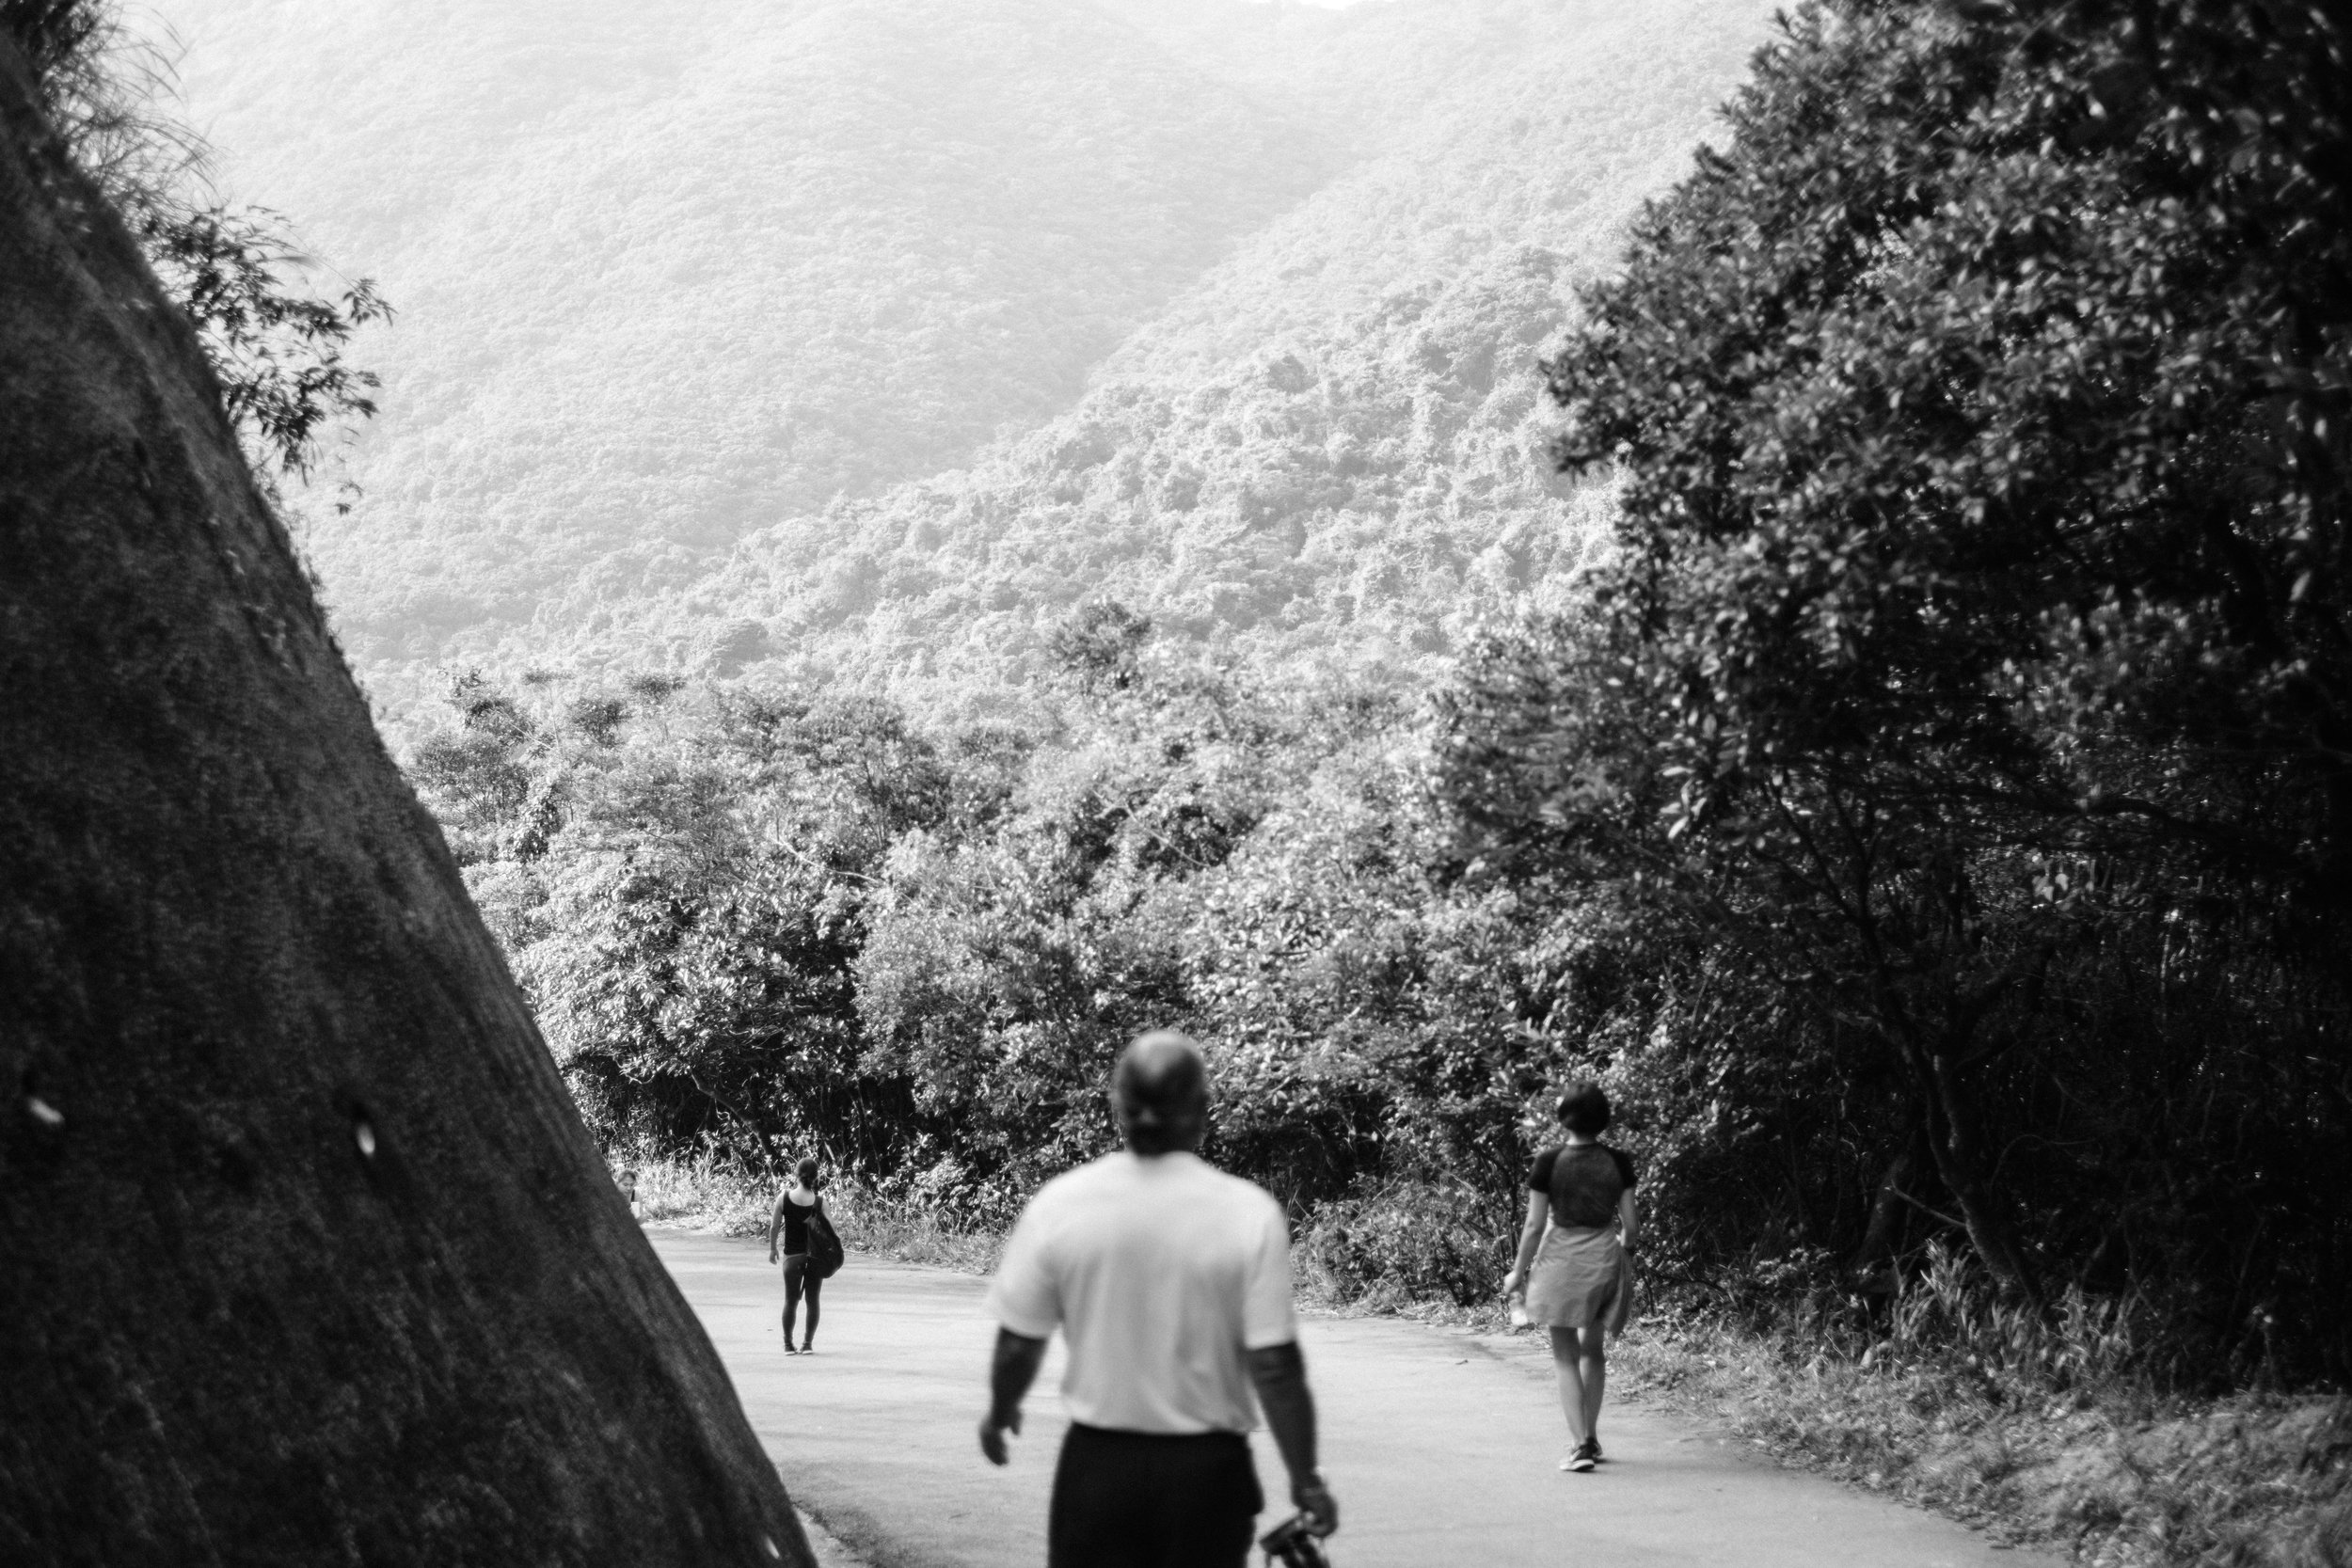 Hiking the trails at Victoria Peak in Hong Kong